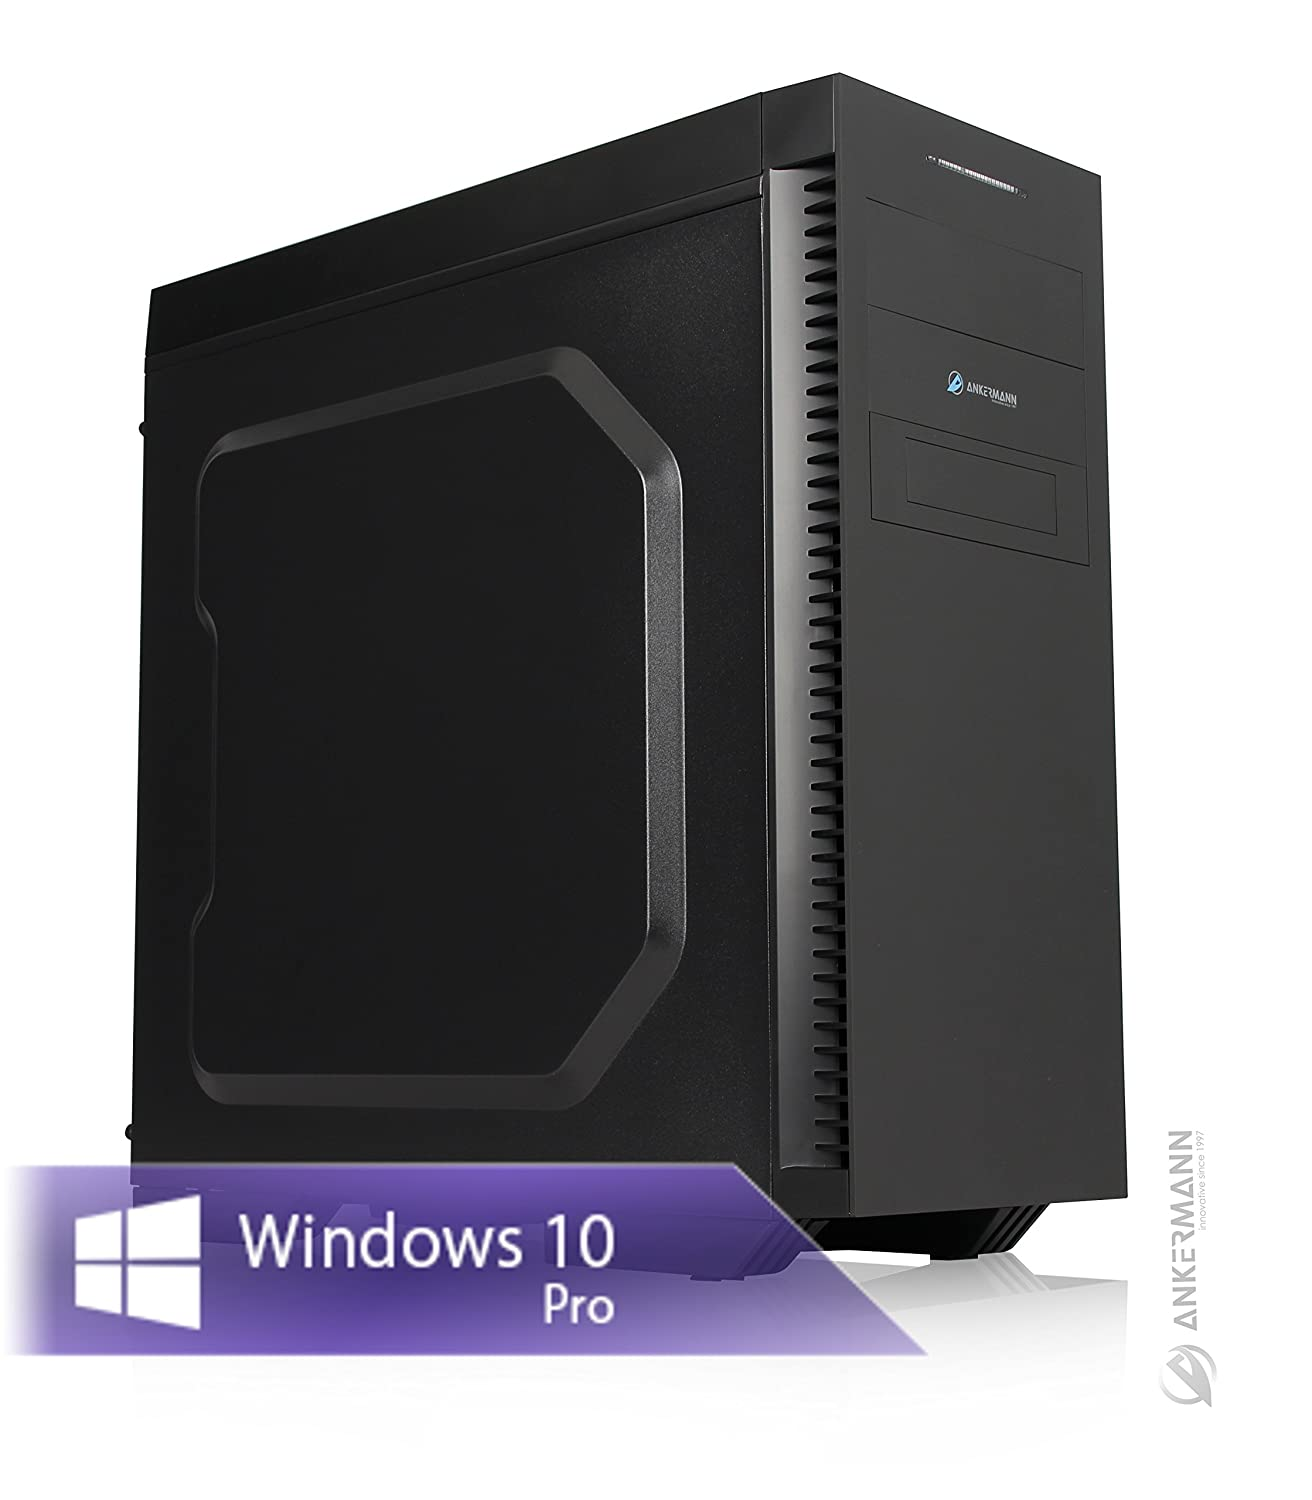 Ankermann Digital Audio Workstation PC Garanzia di 24 mesi, Intel i7-8700 6x3.2GHz GeForce GTX 1050 Ti 4GB 4K 32GB RAM 250GB SSD 2TB HDD Windows 10 PRO Ankermann-PC